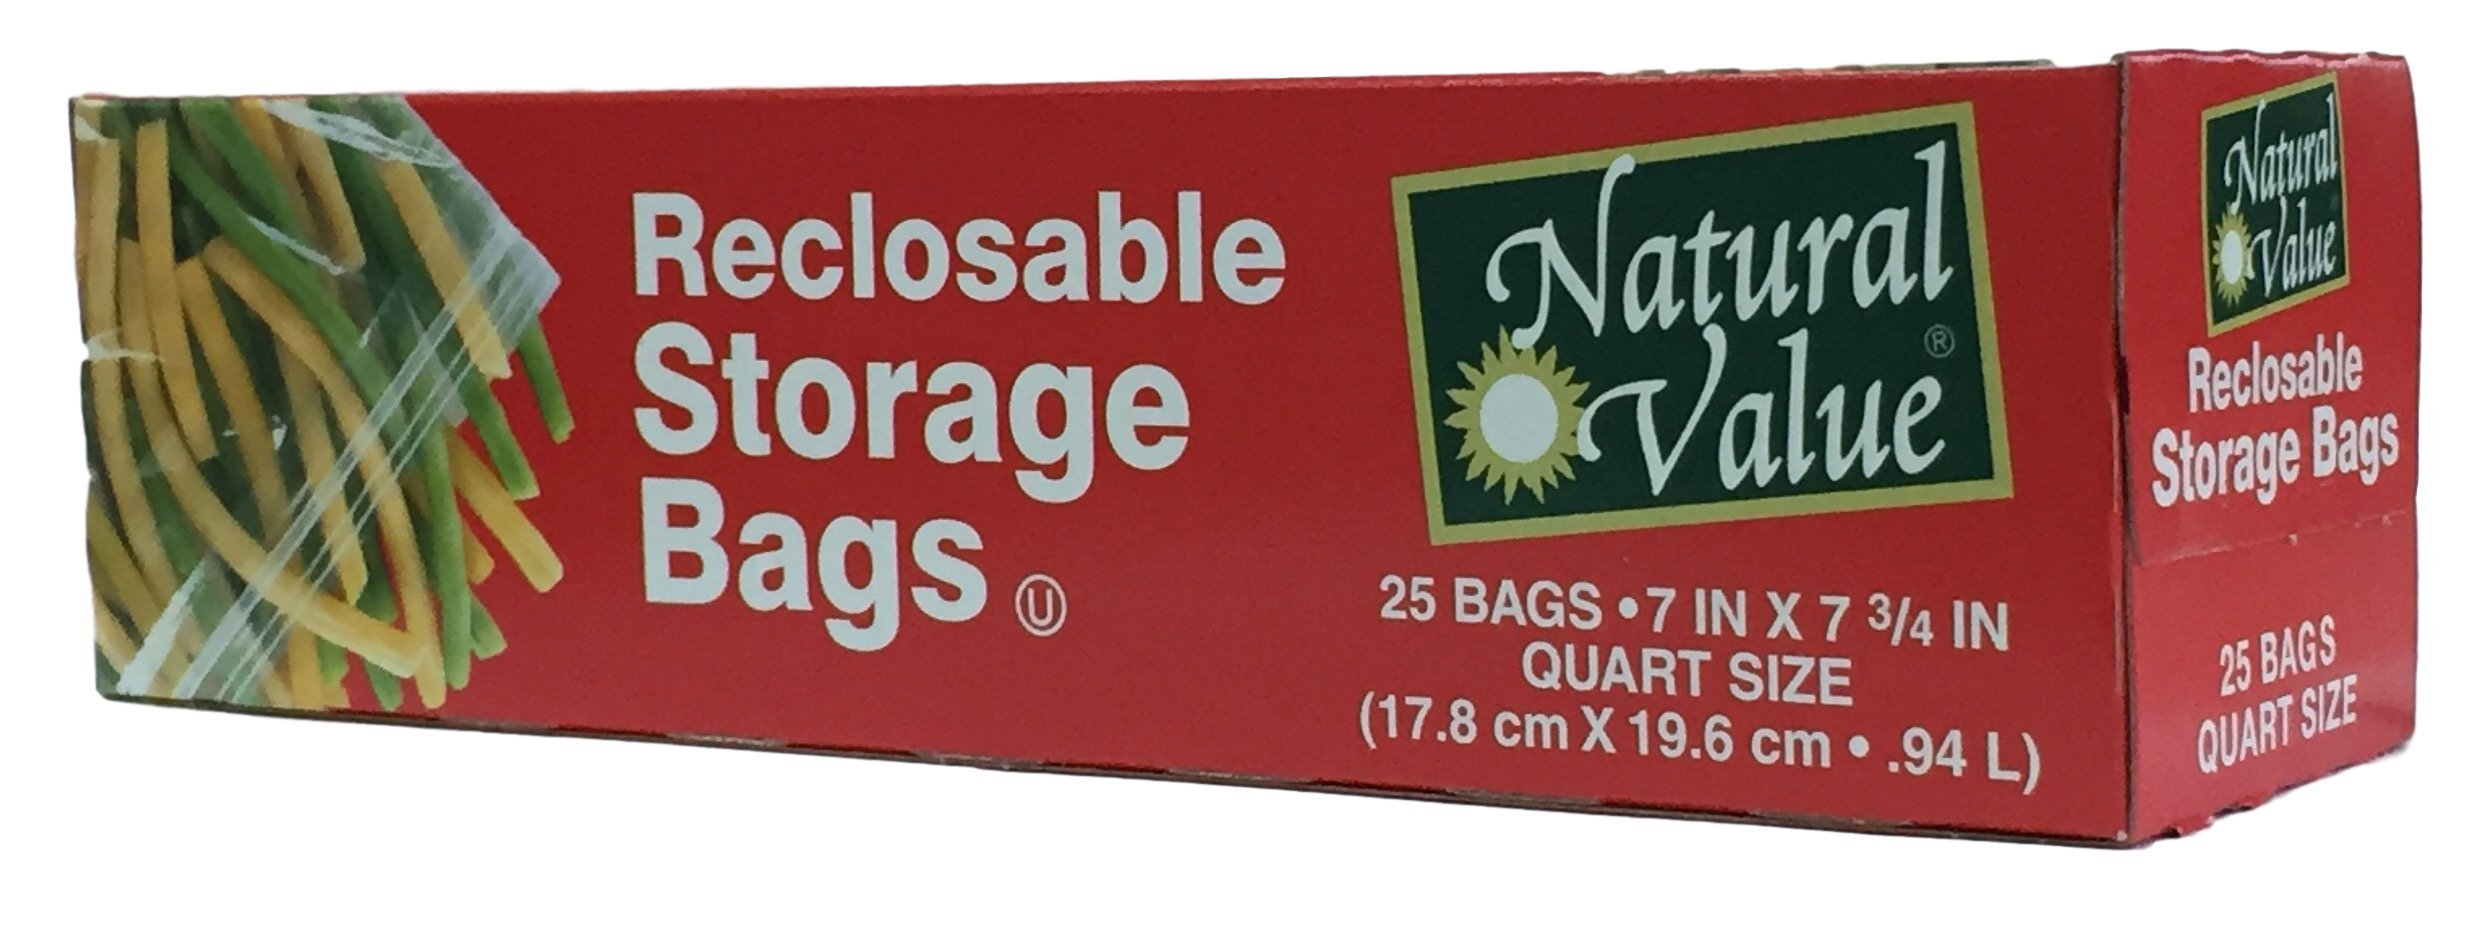 Natural Value - Recloseable Storage Bags - Quart - 25-Count - Pack of 3